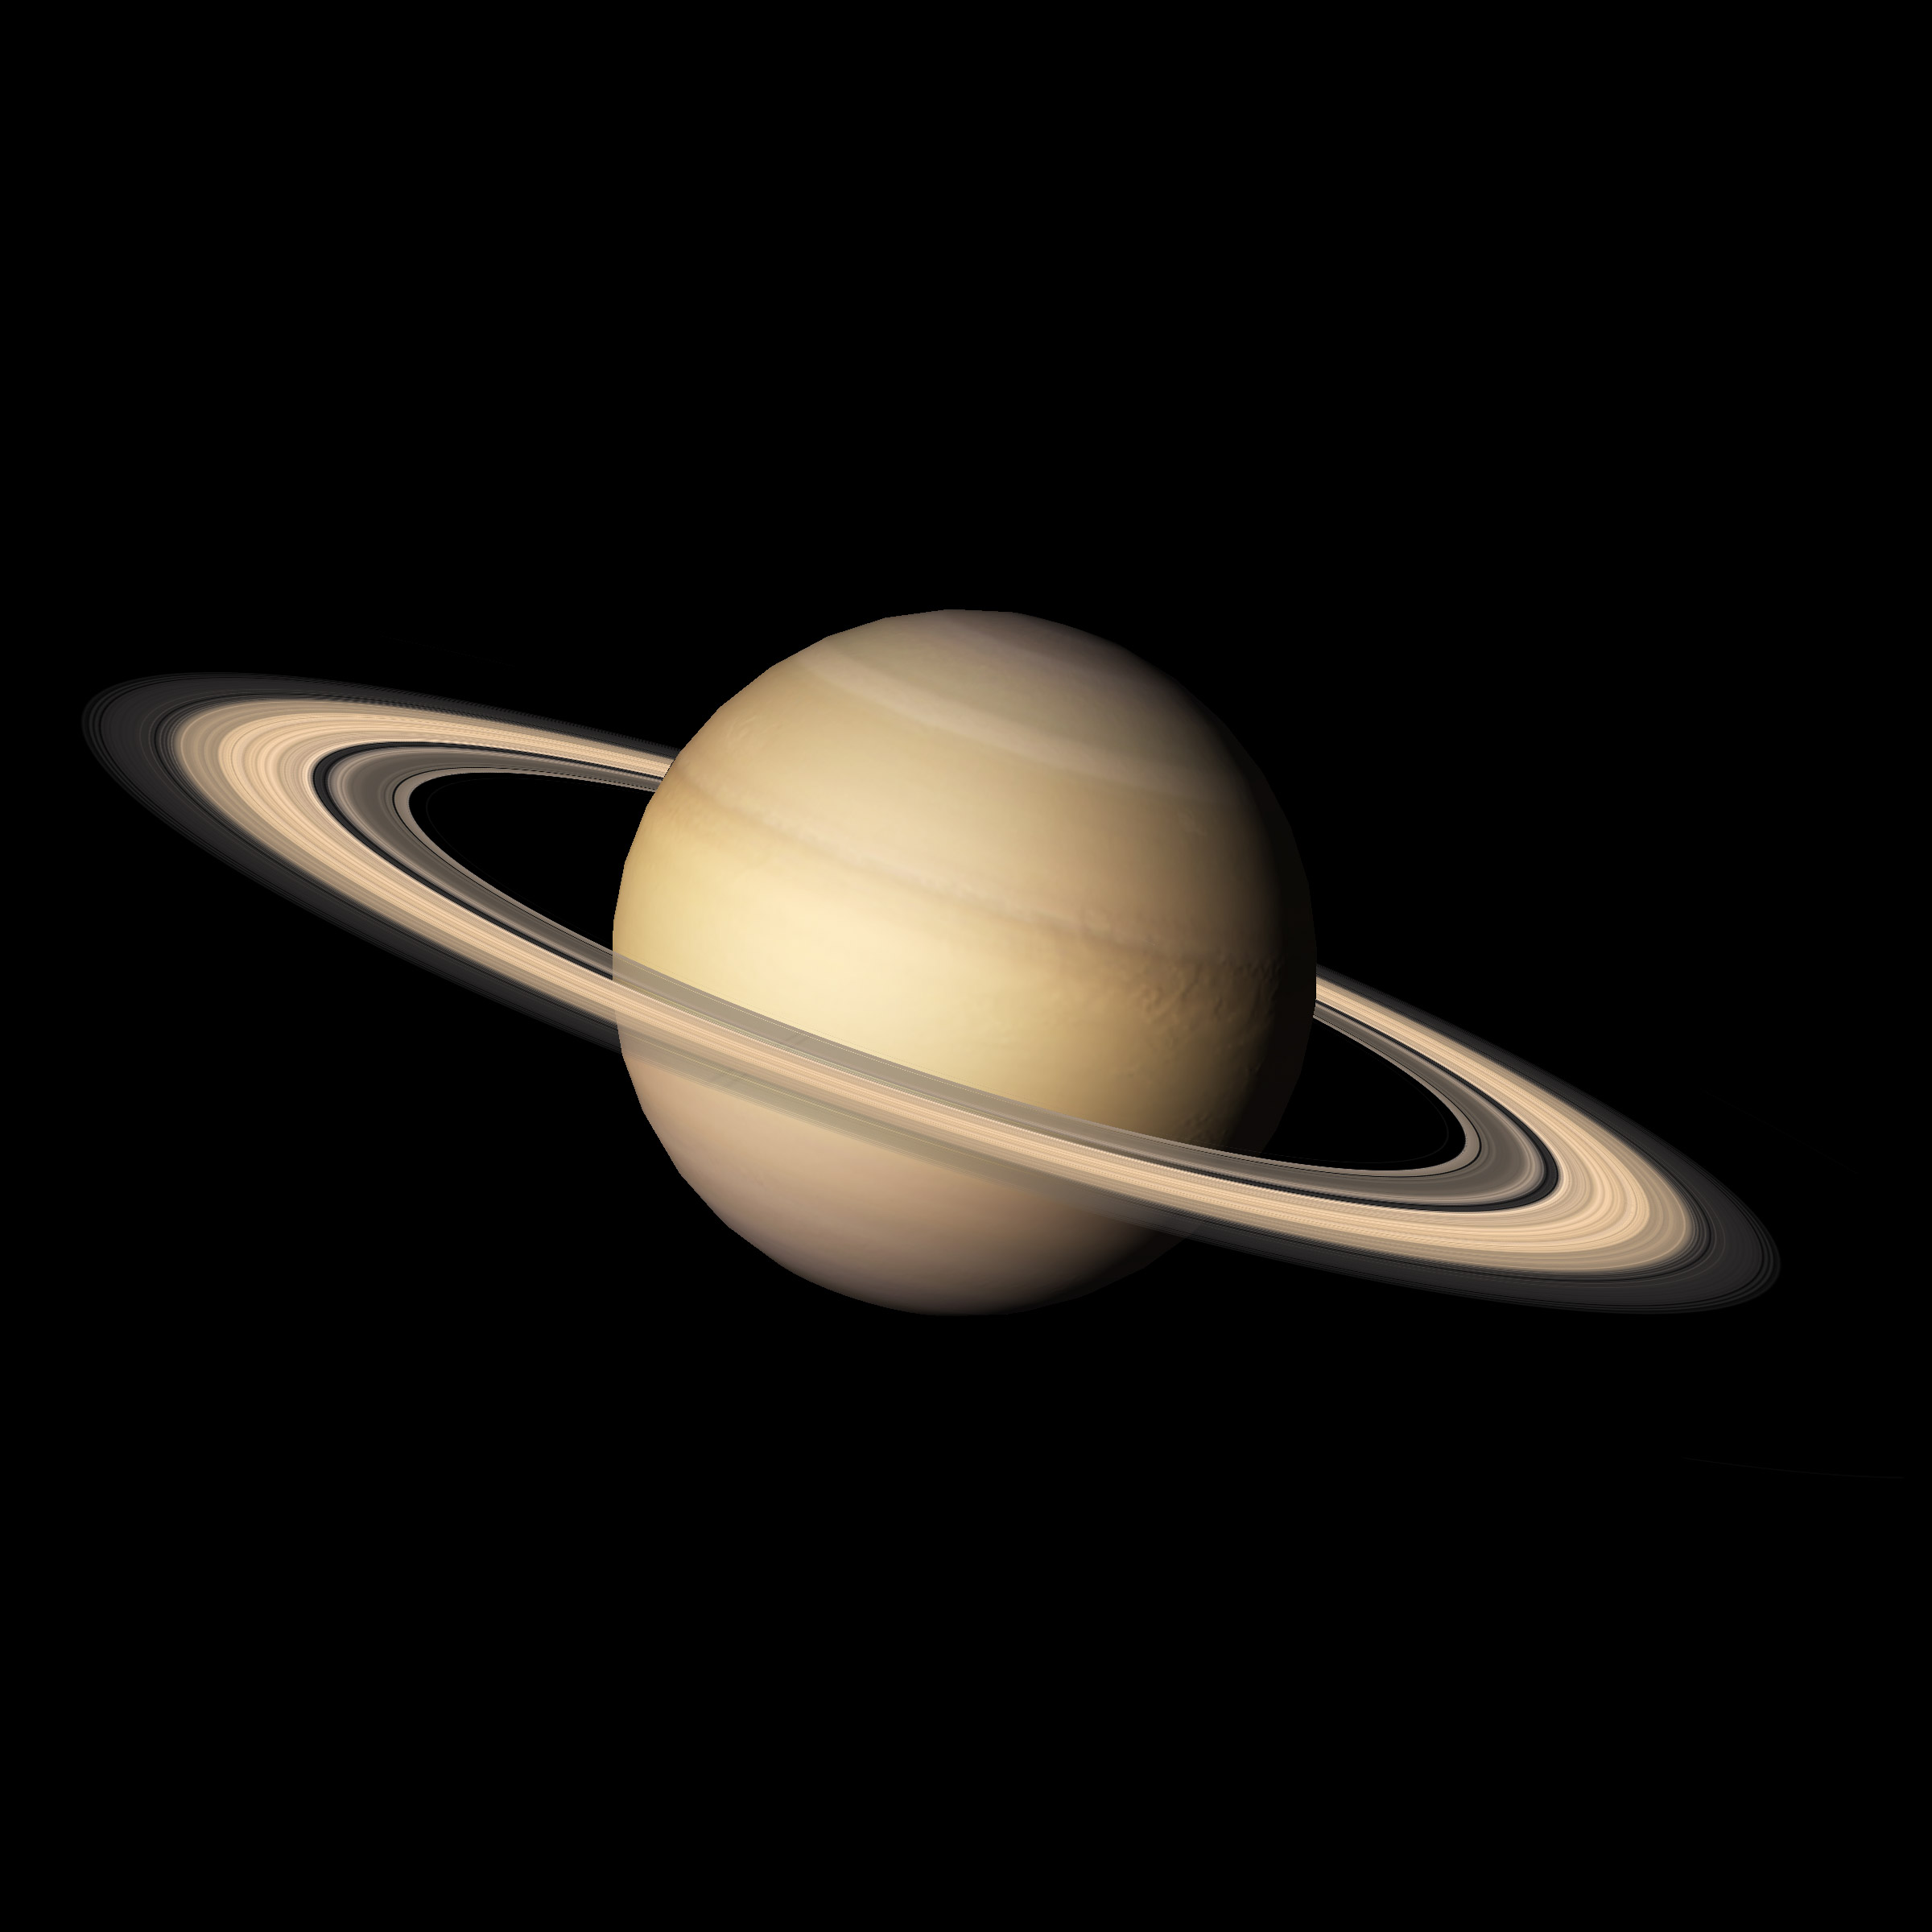 Amazing Dream Image Saturn - Dreamicus Dreamer's Dictionary